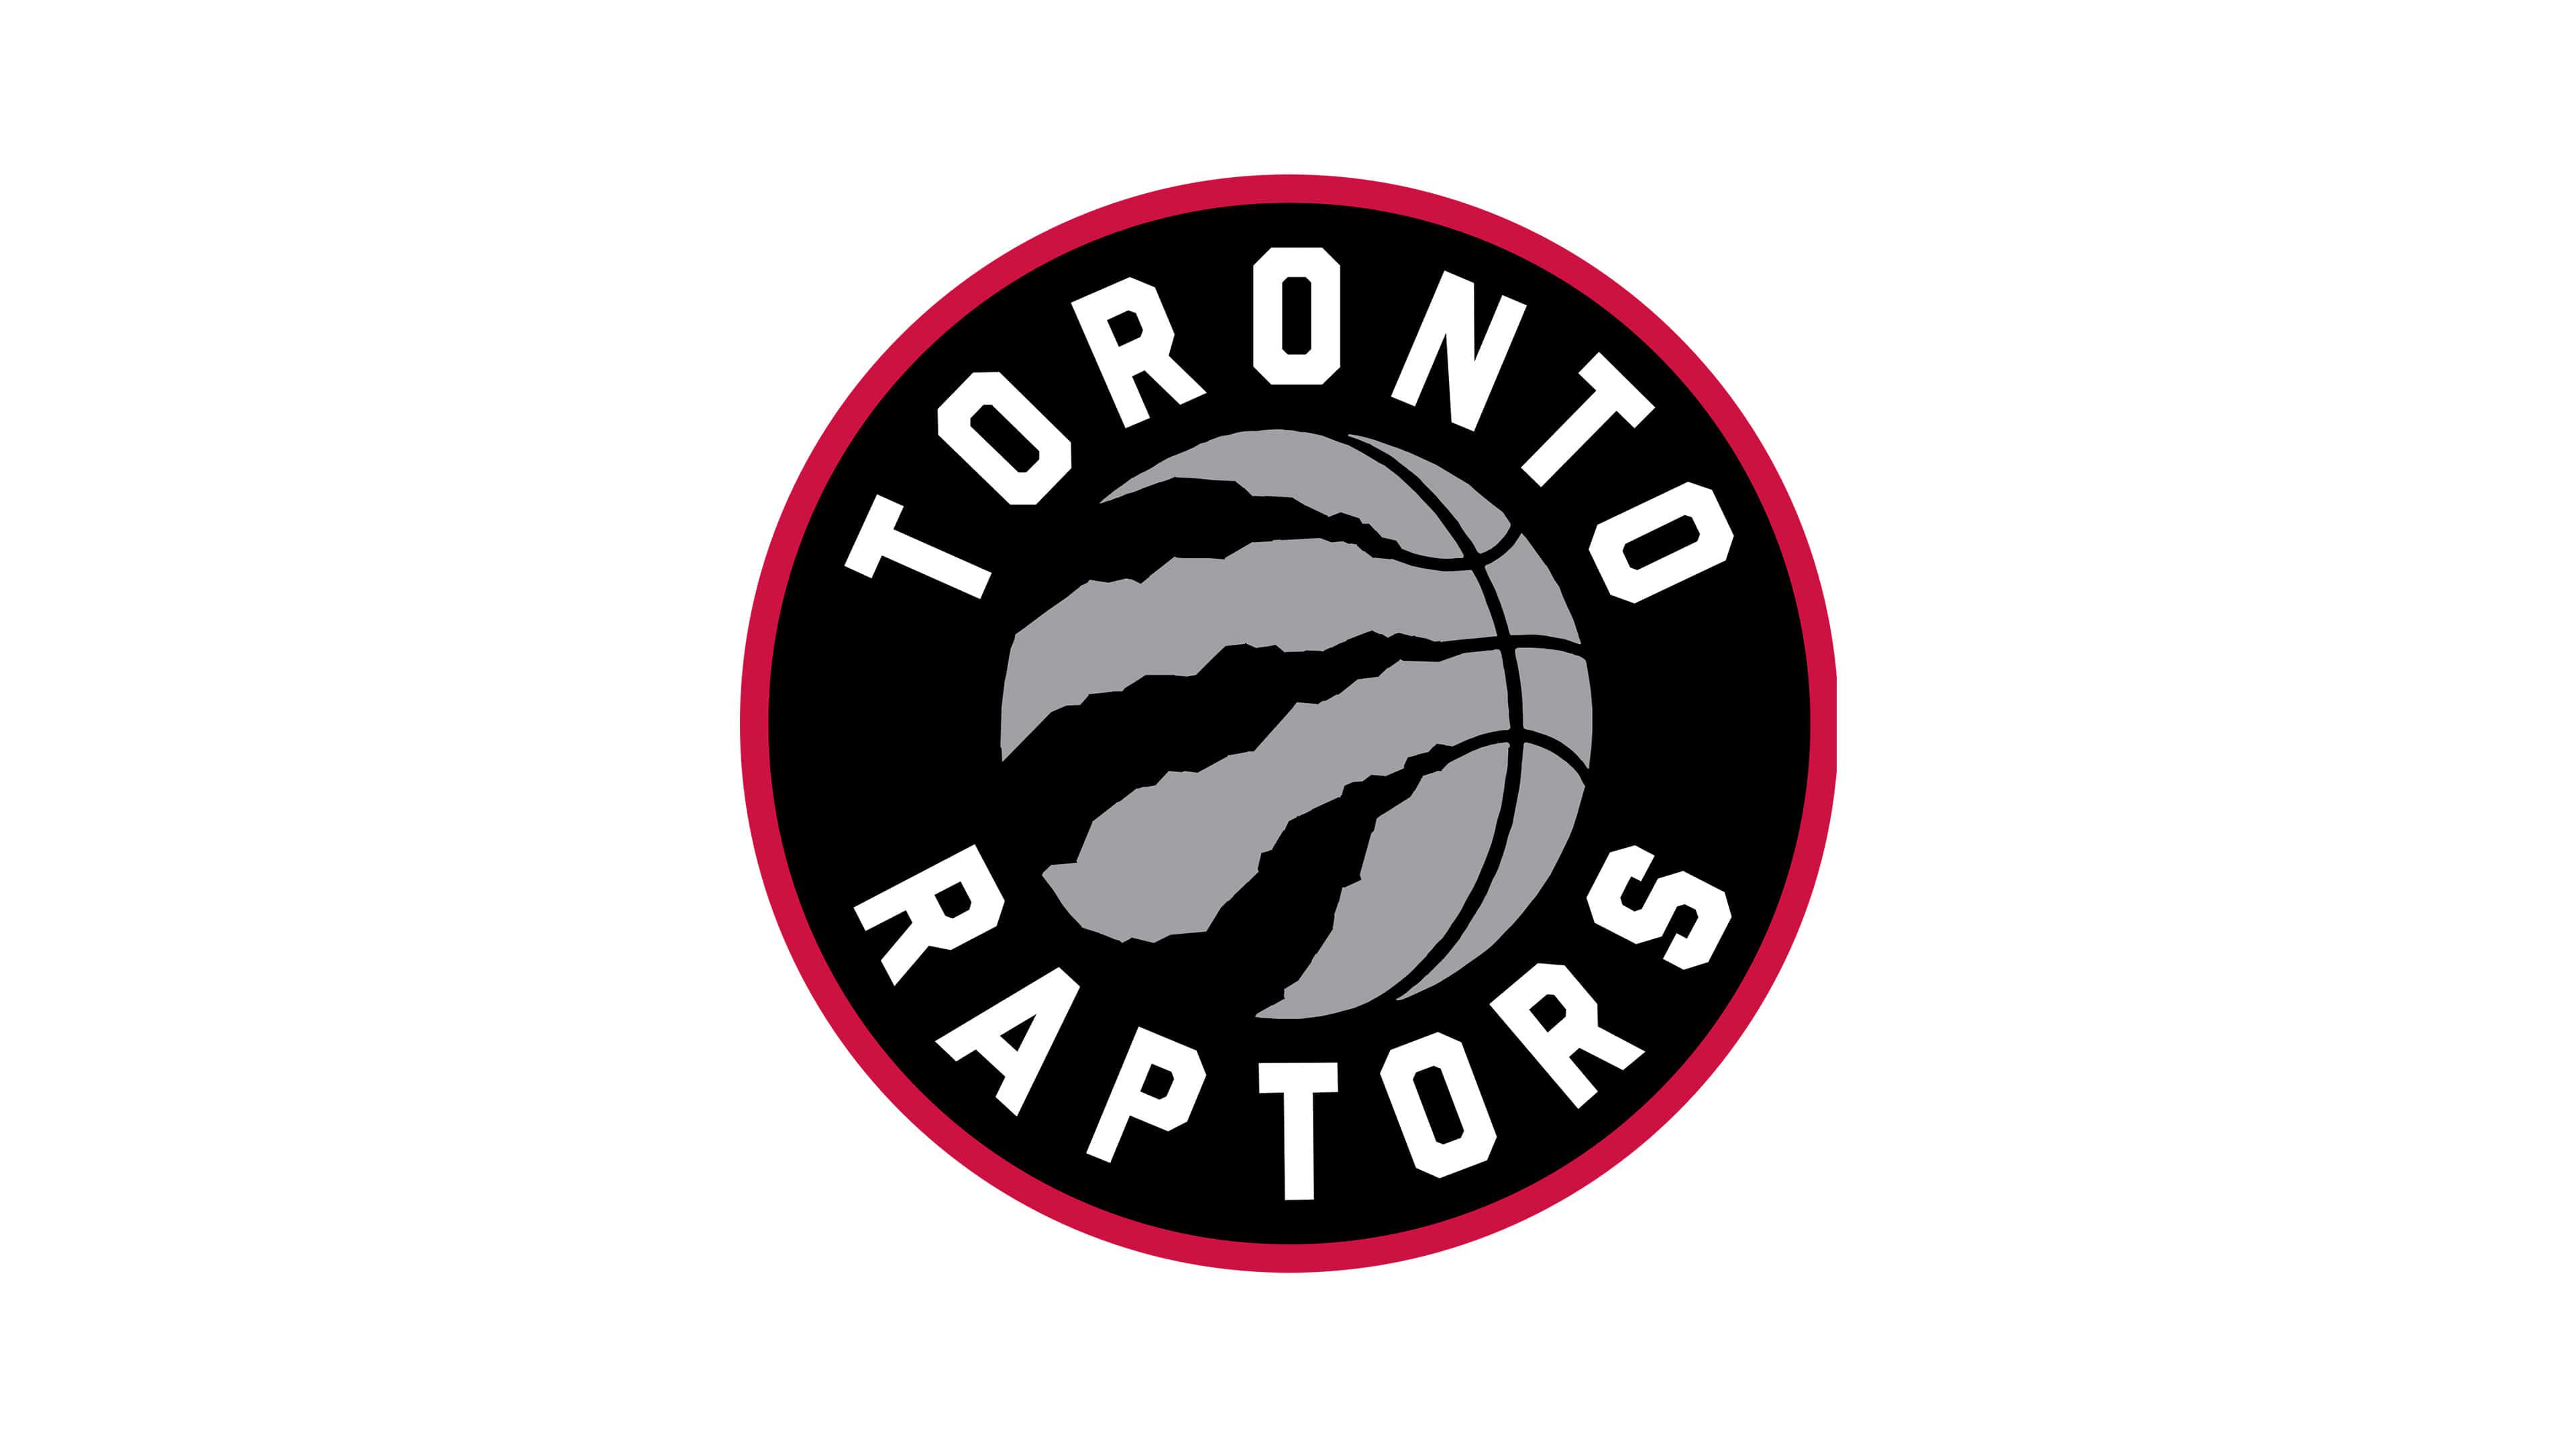 Download Toronto Raptors Wallpaper Free Desktop Backgrounds